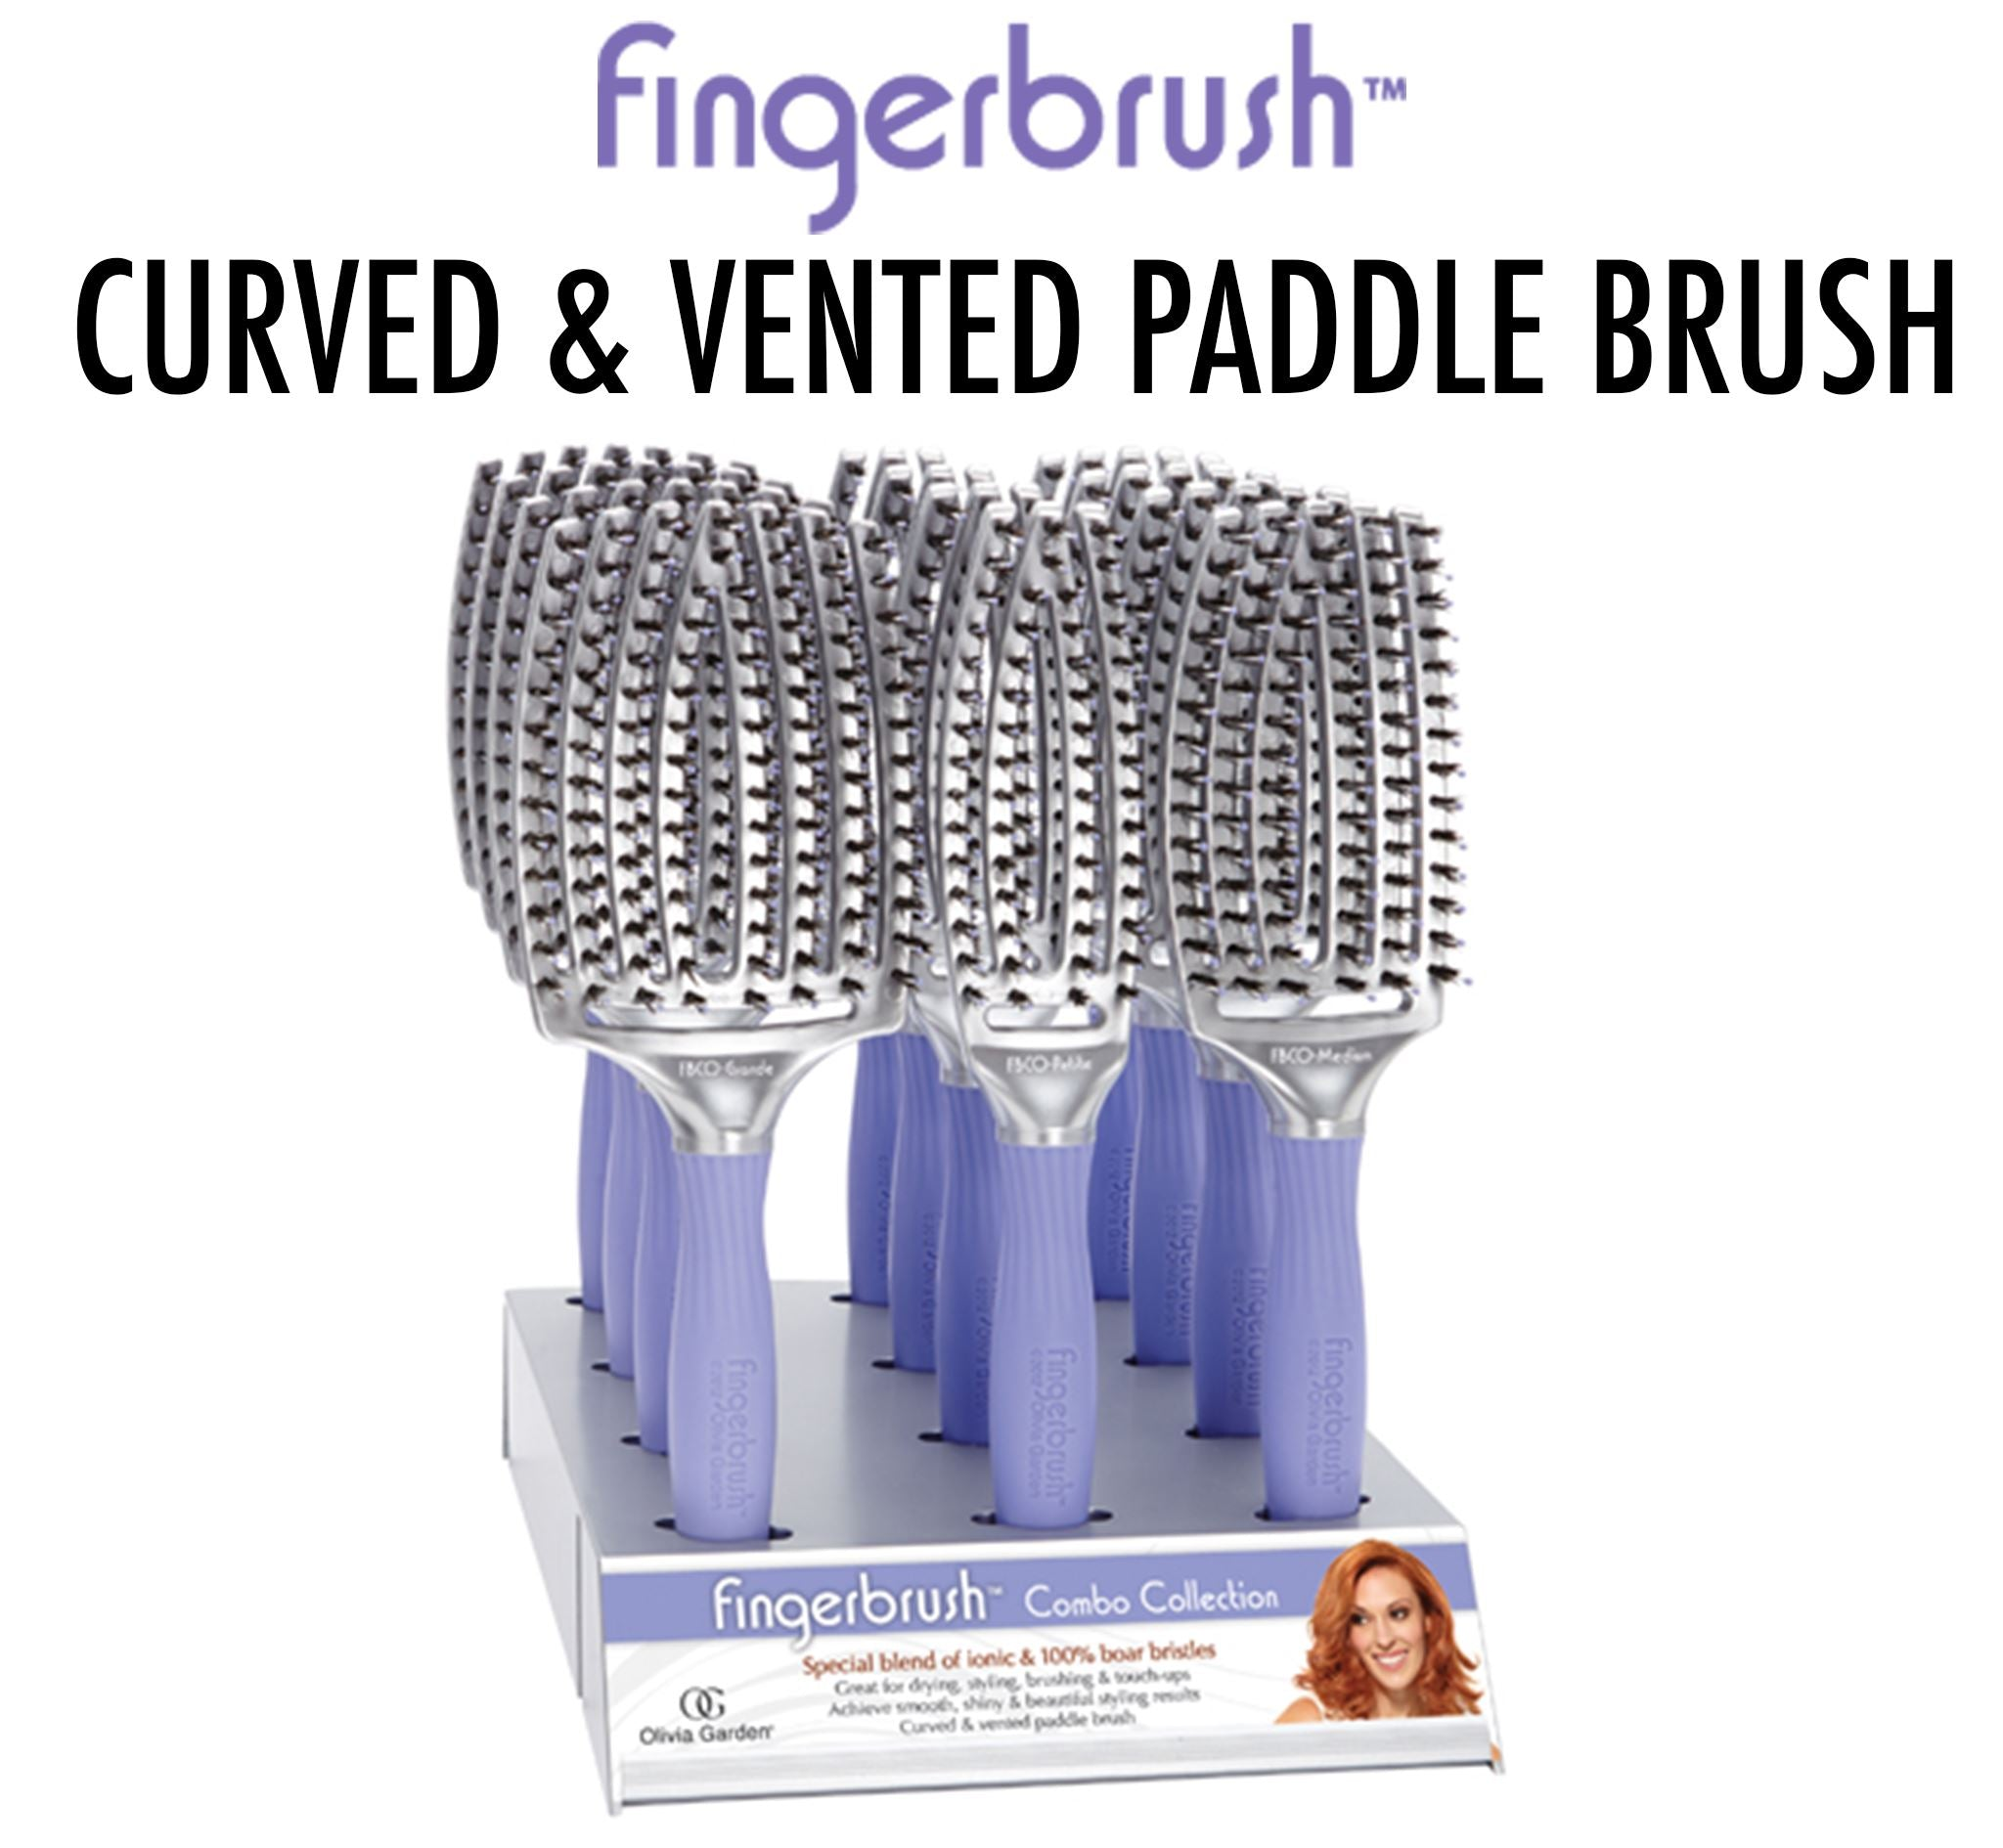 Fingerbrush - Curved & Vented Paddle Brush